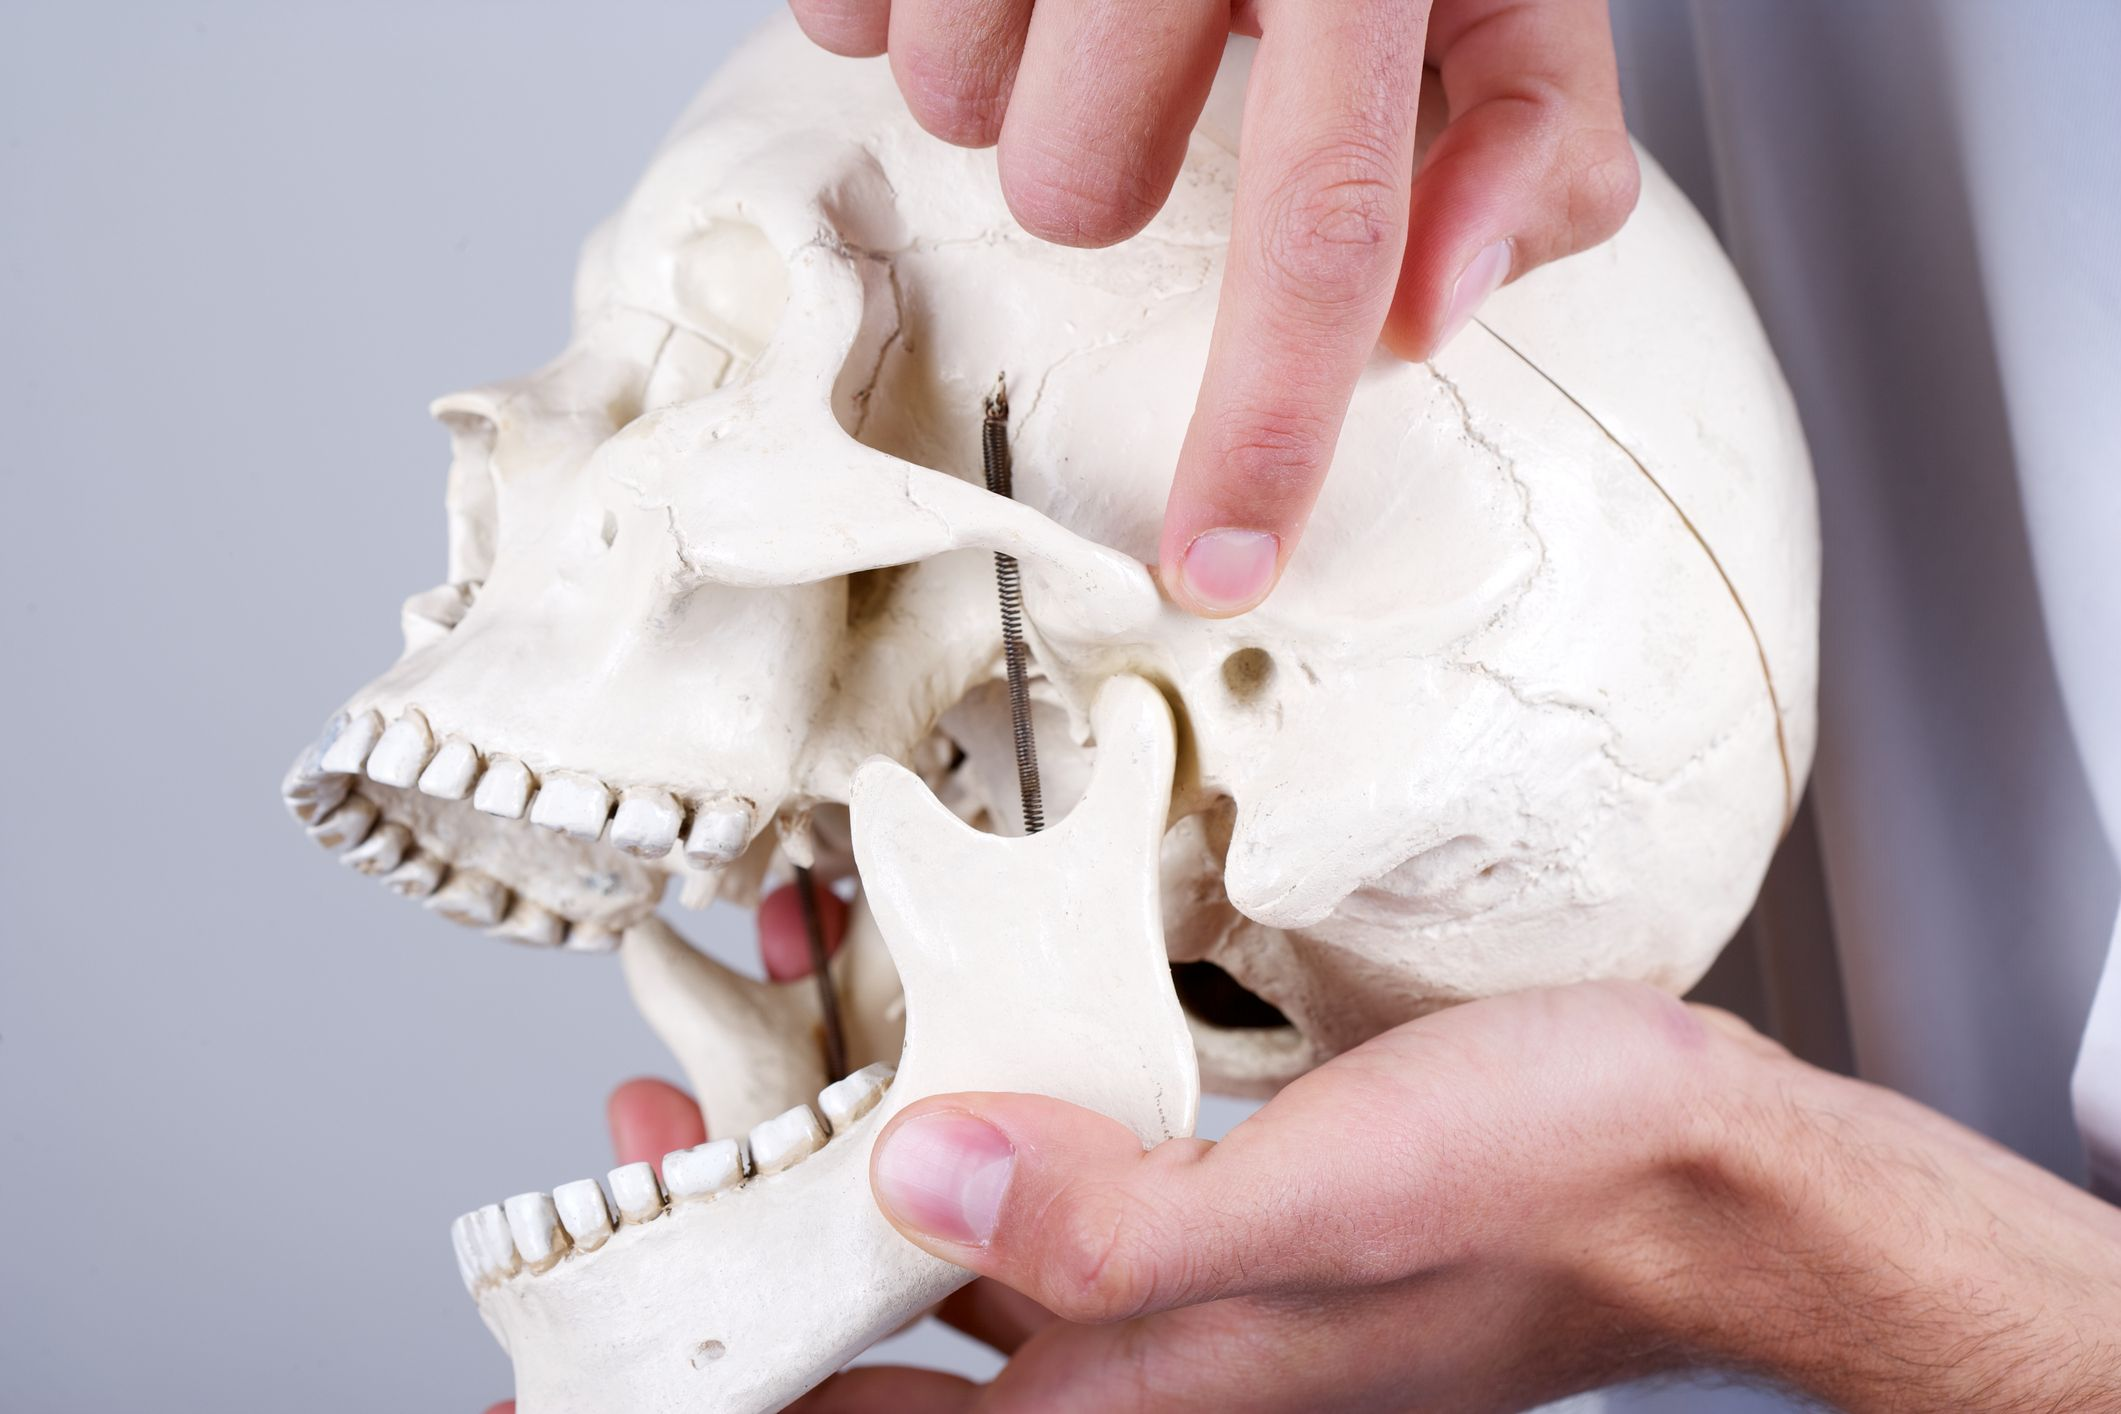 Finger pointing to TMJ on model of skull